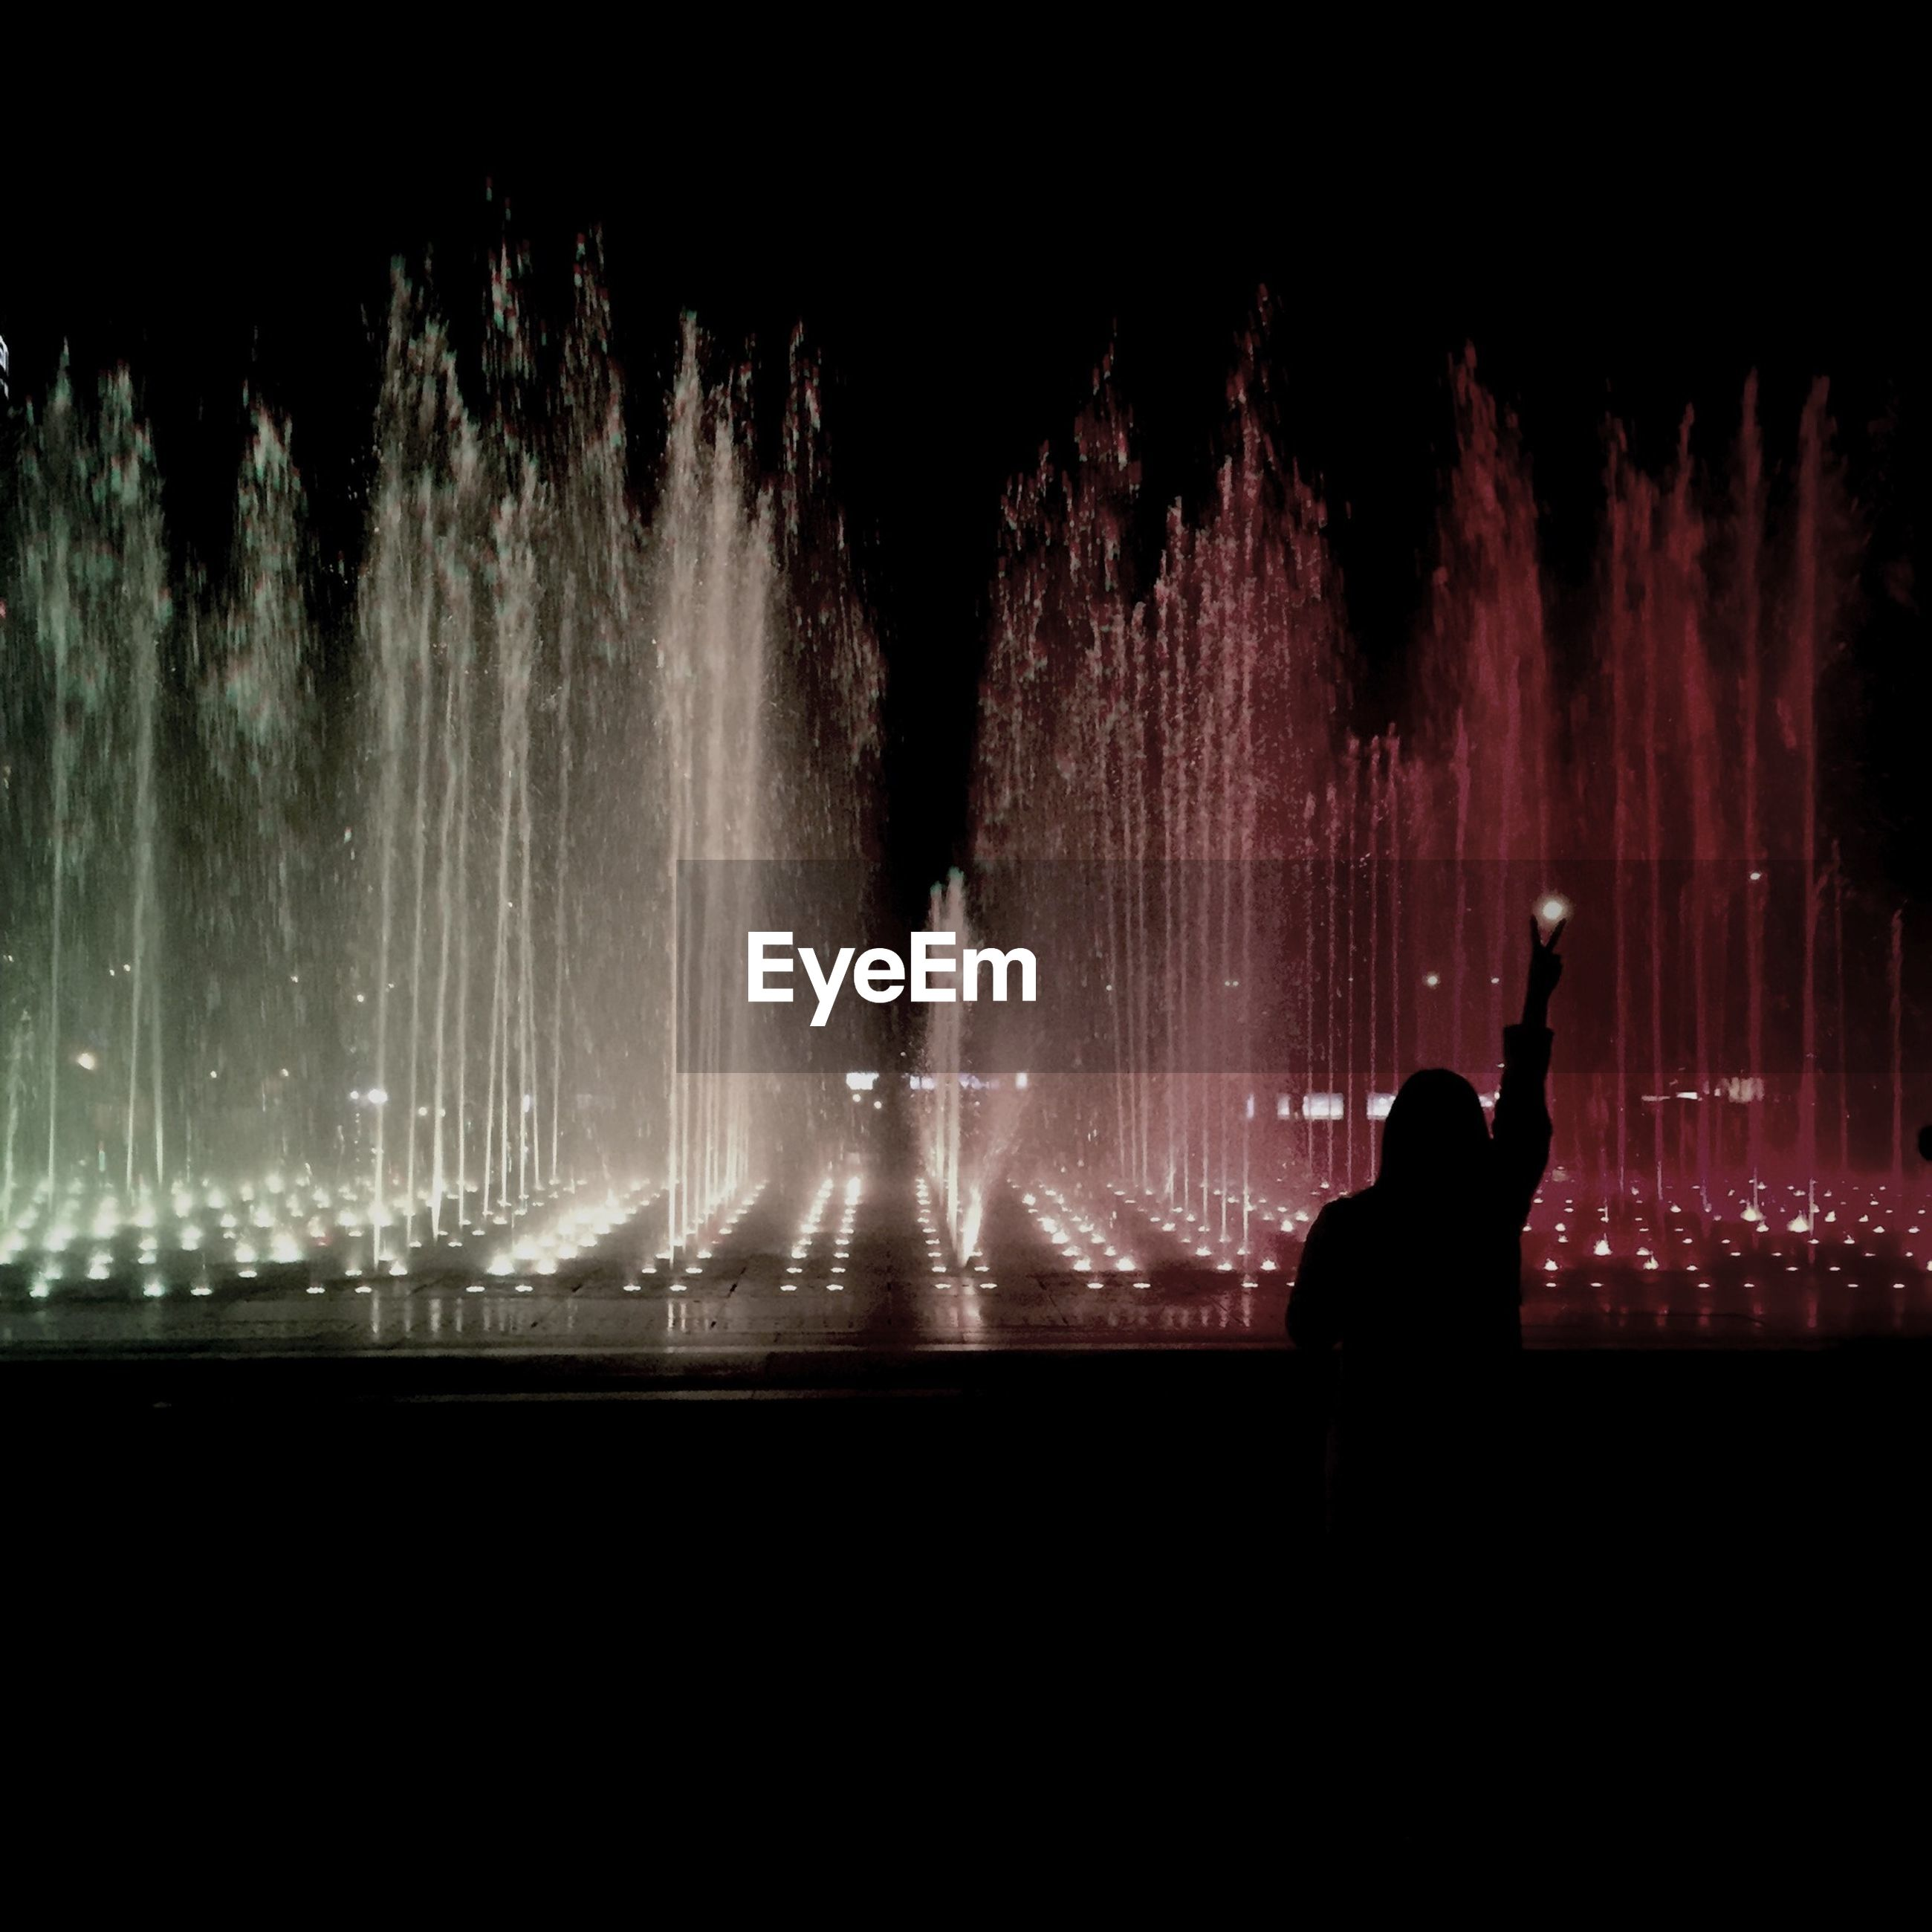 night, illuminated, silhouette, men, lifestyles, dark, leisure activity, long exposure, motion, unrecognizable person, person, arts culture and entertainment, glowing, light, standing, fountain, light - natural phenomenon, rear view, event